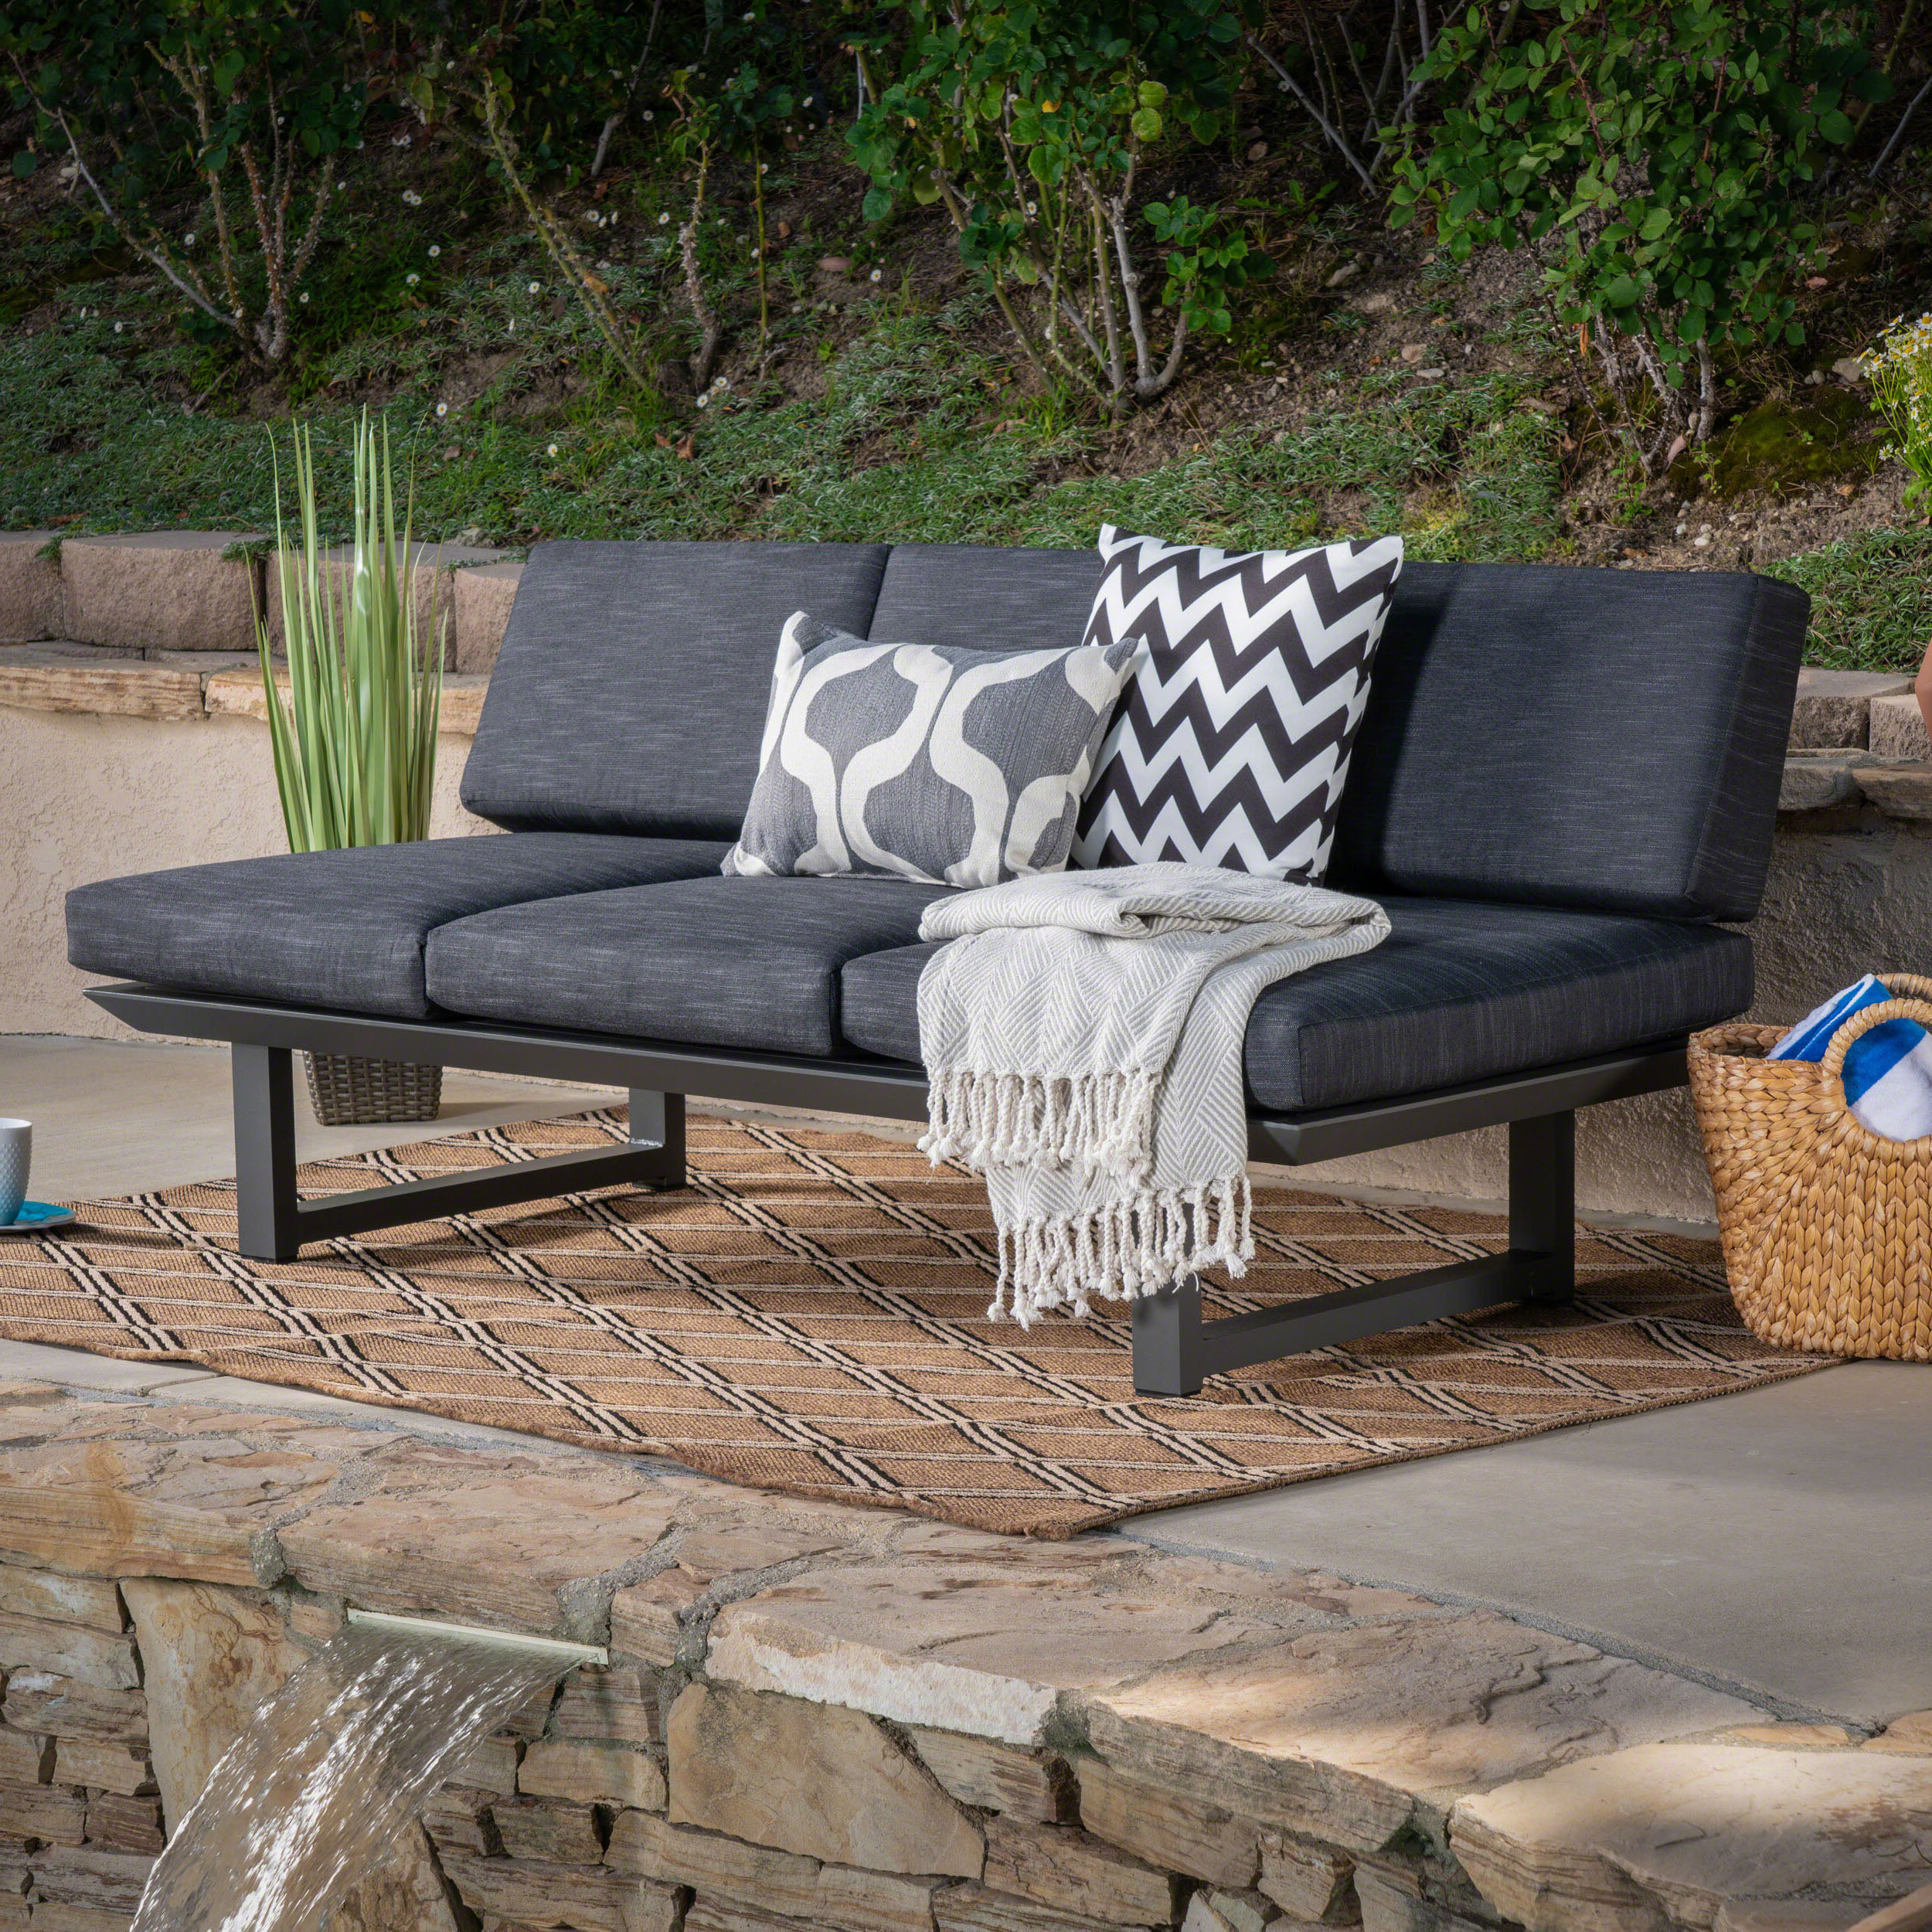 Lobdell Patio Sofa With Cushions Within Most Recent Baltic Patio Sofas With Cushions (Gallery 22 of 25)